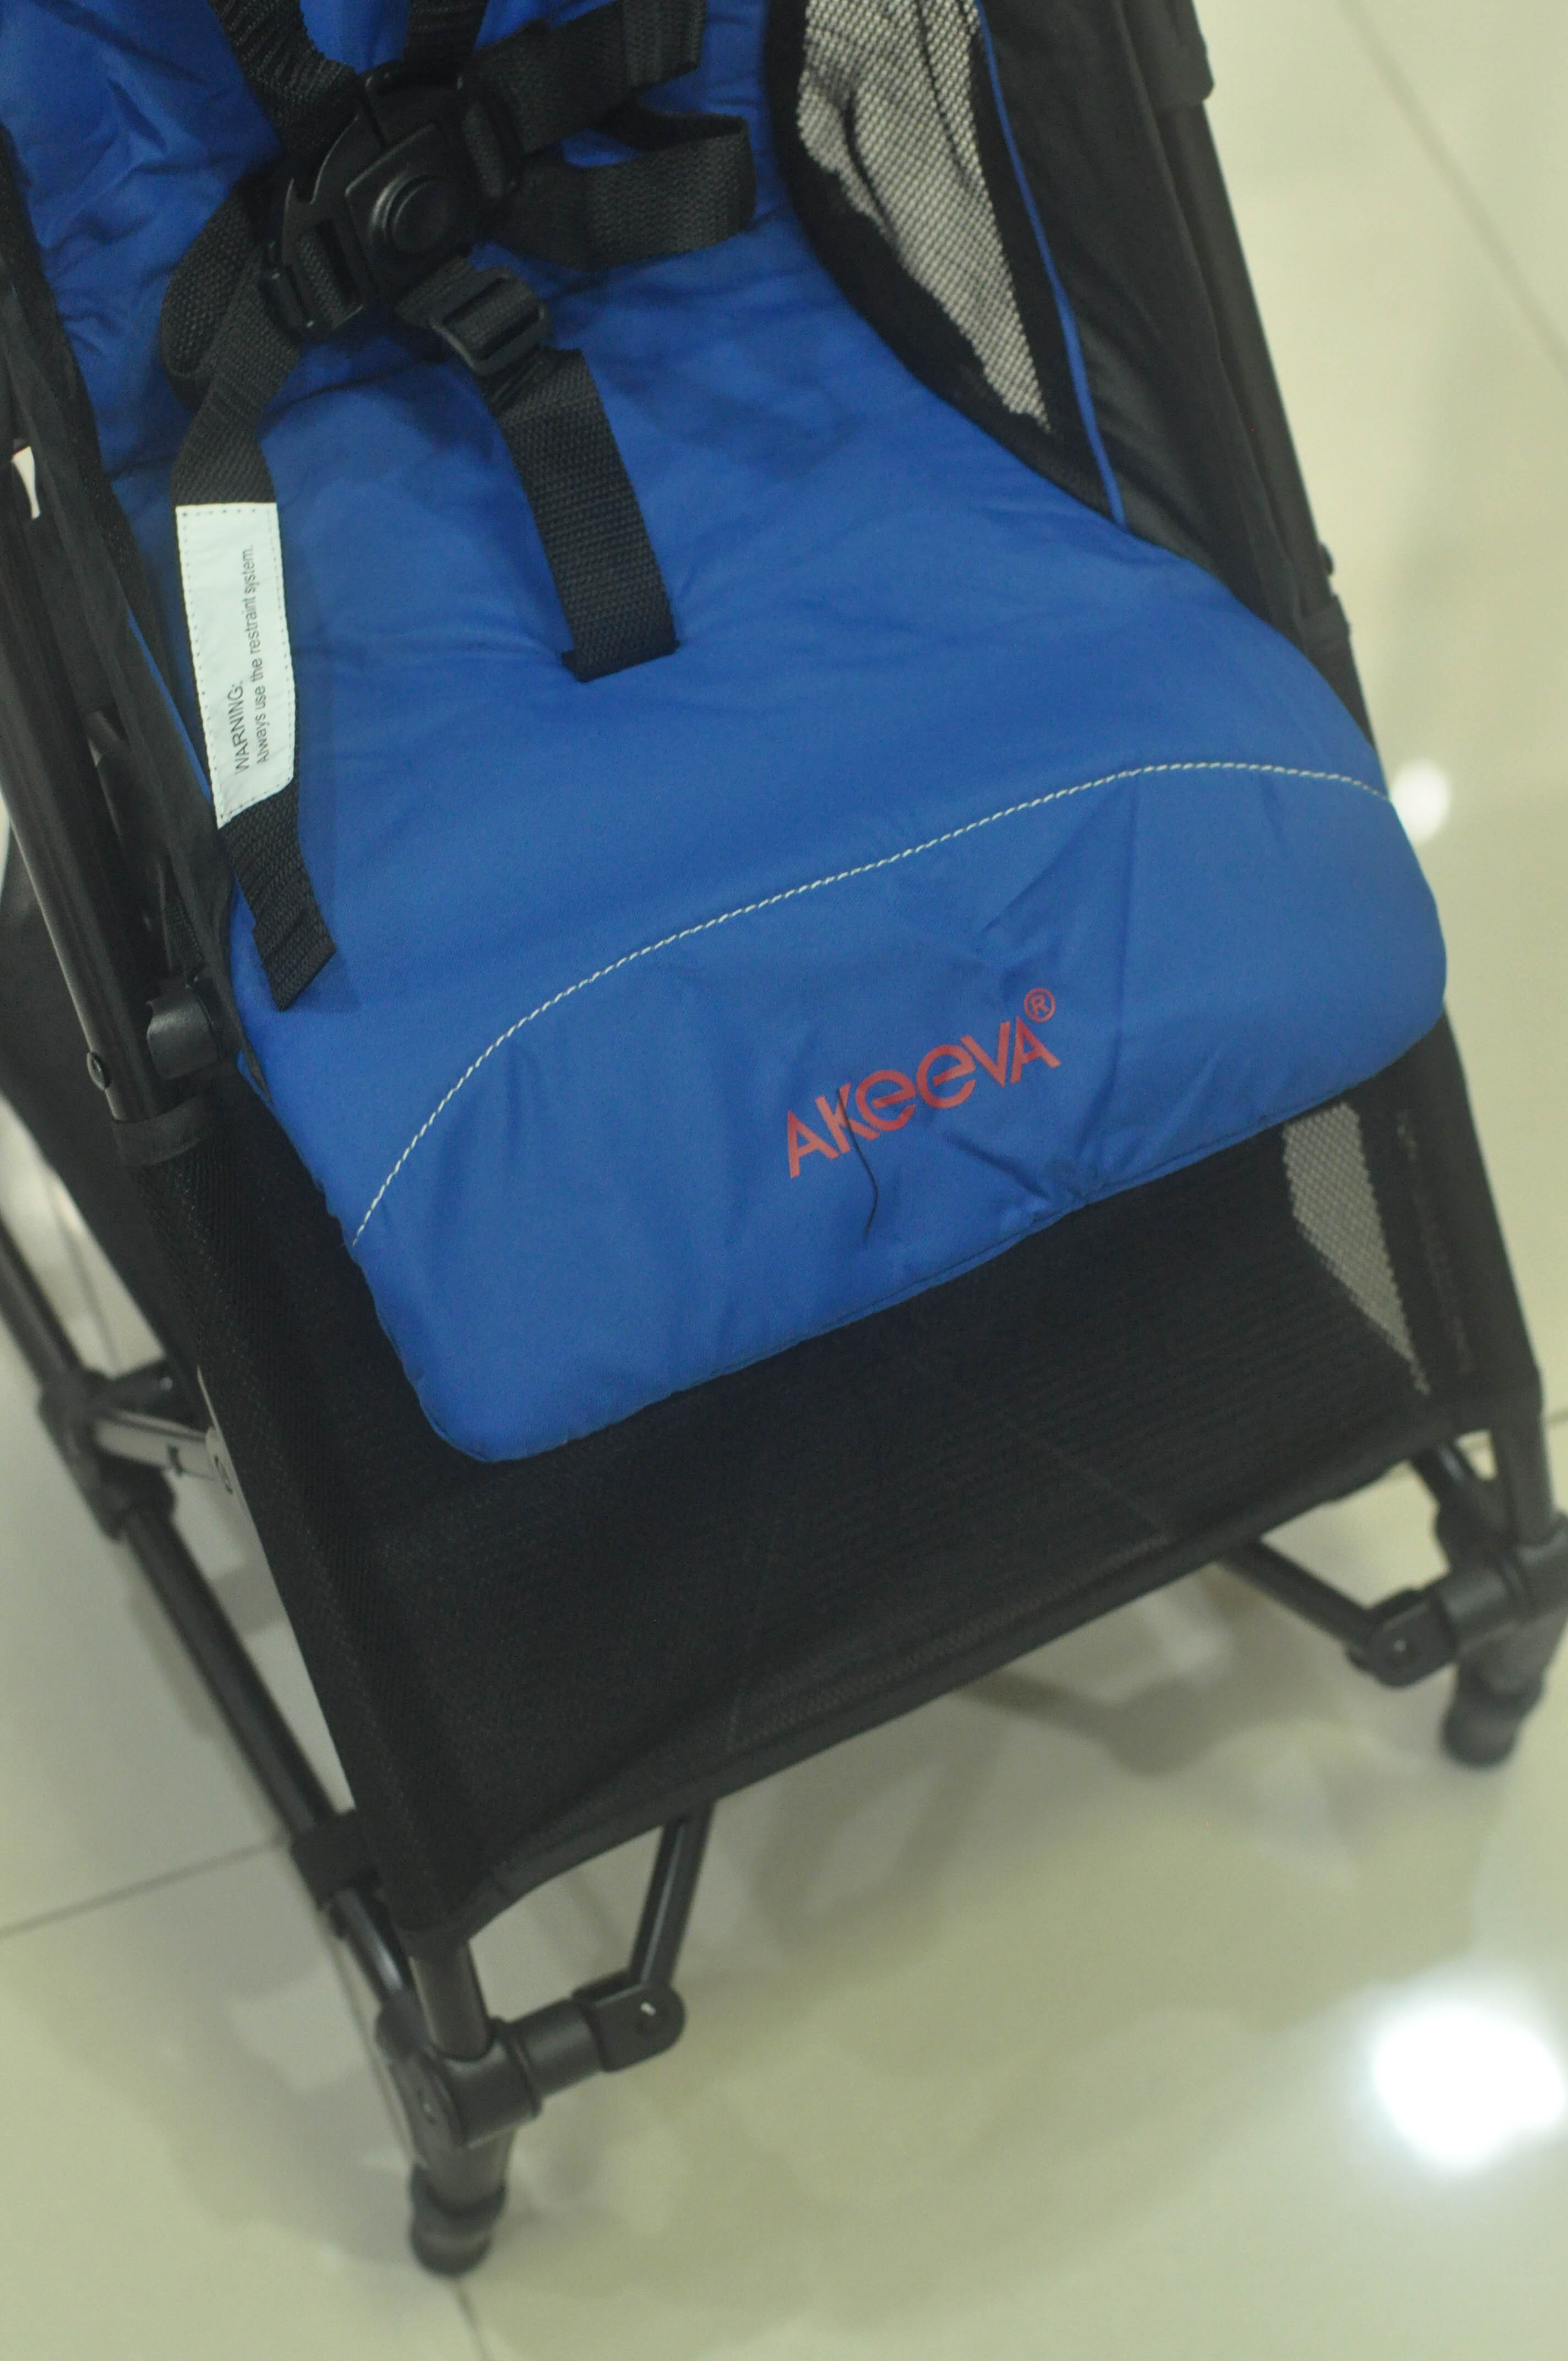 akeeva alvis pocket stroller philippines front view